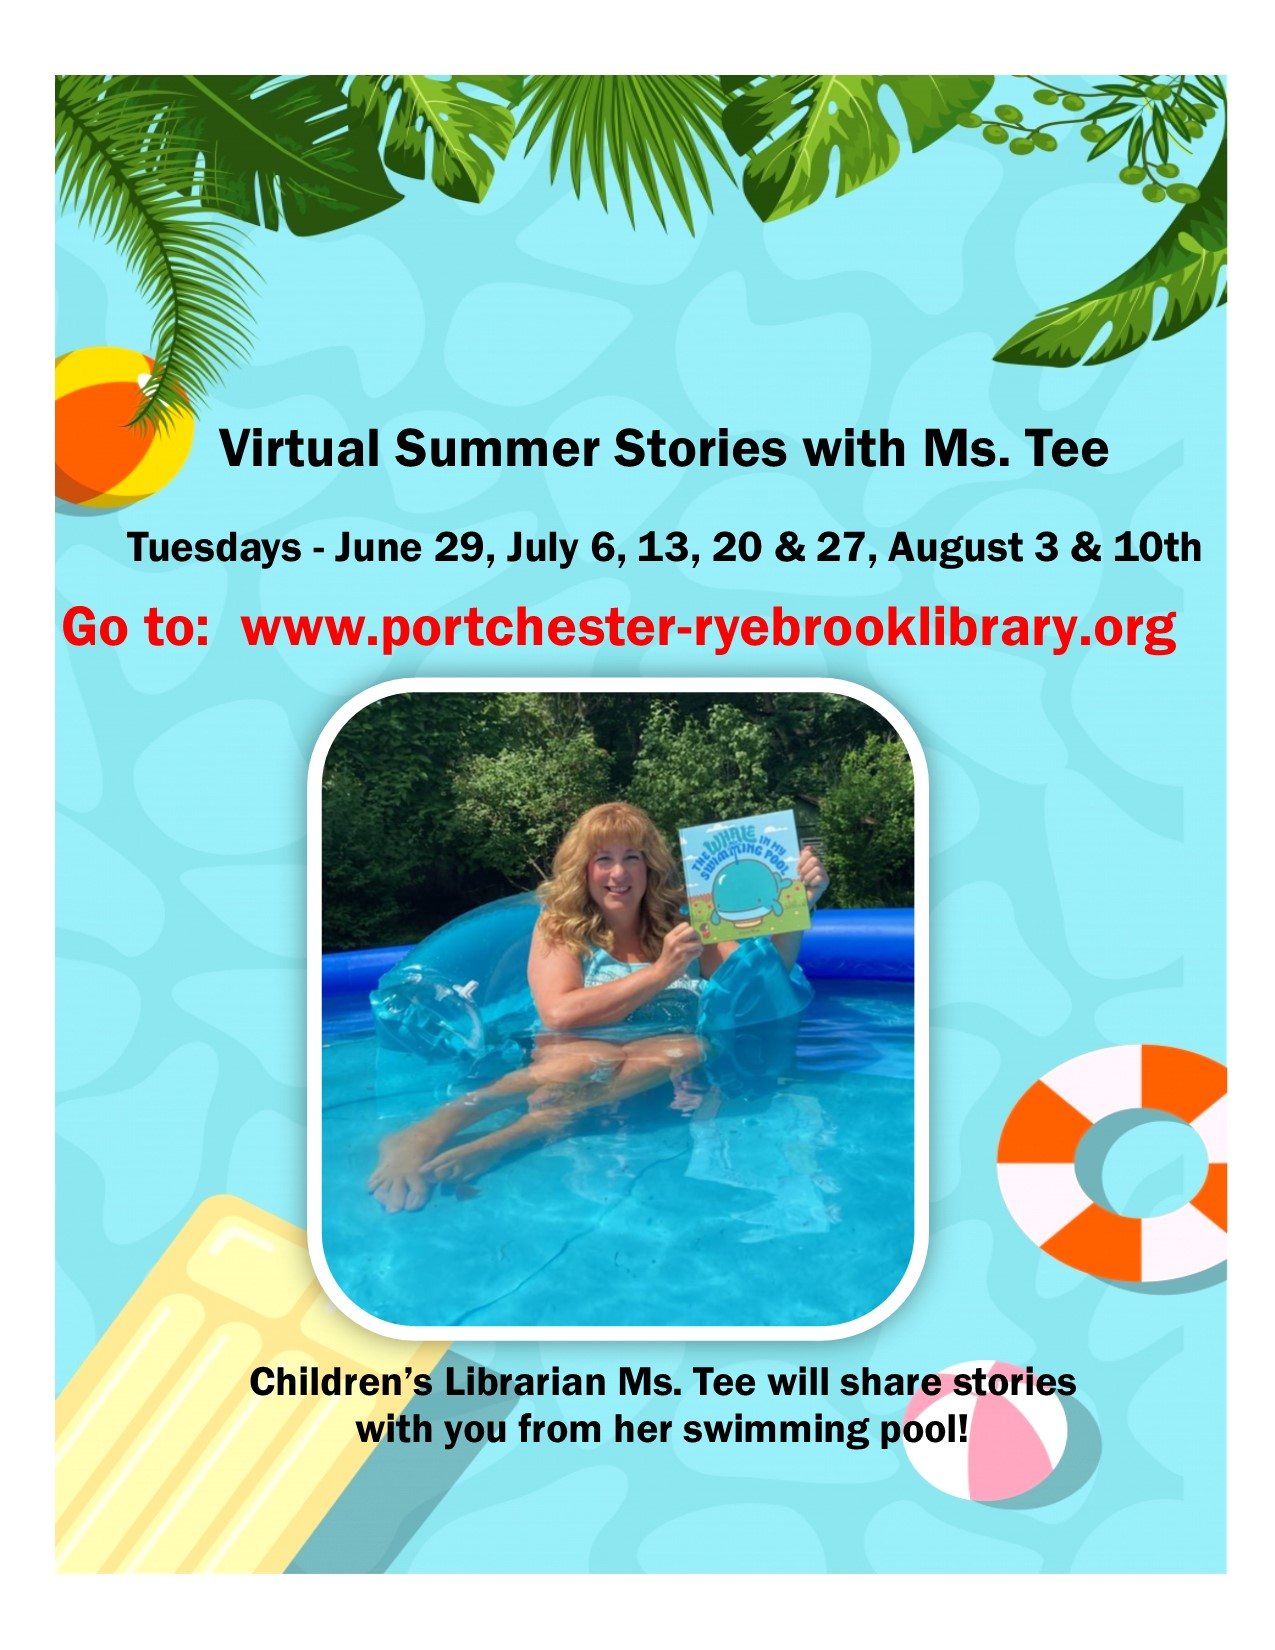 Virtual Summer Stories with Ms. Tee at Port Chester-Rye Brook Public Library